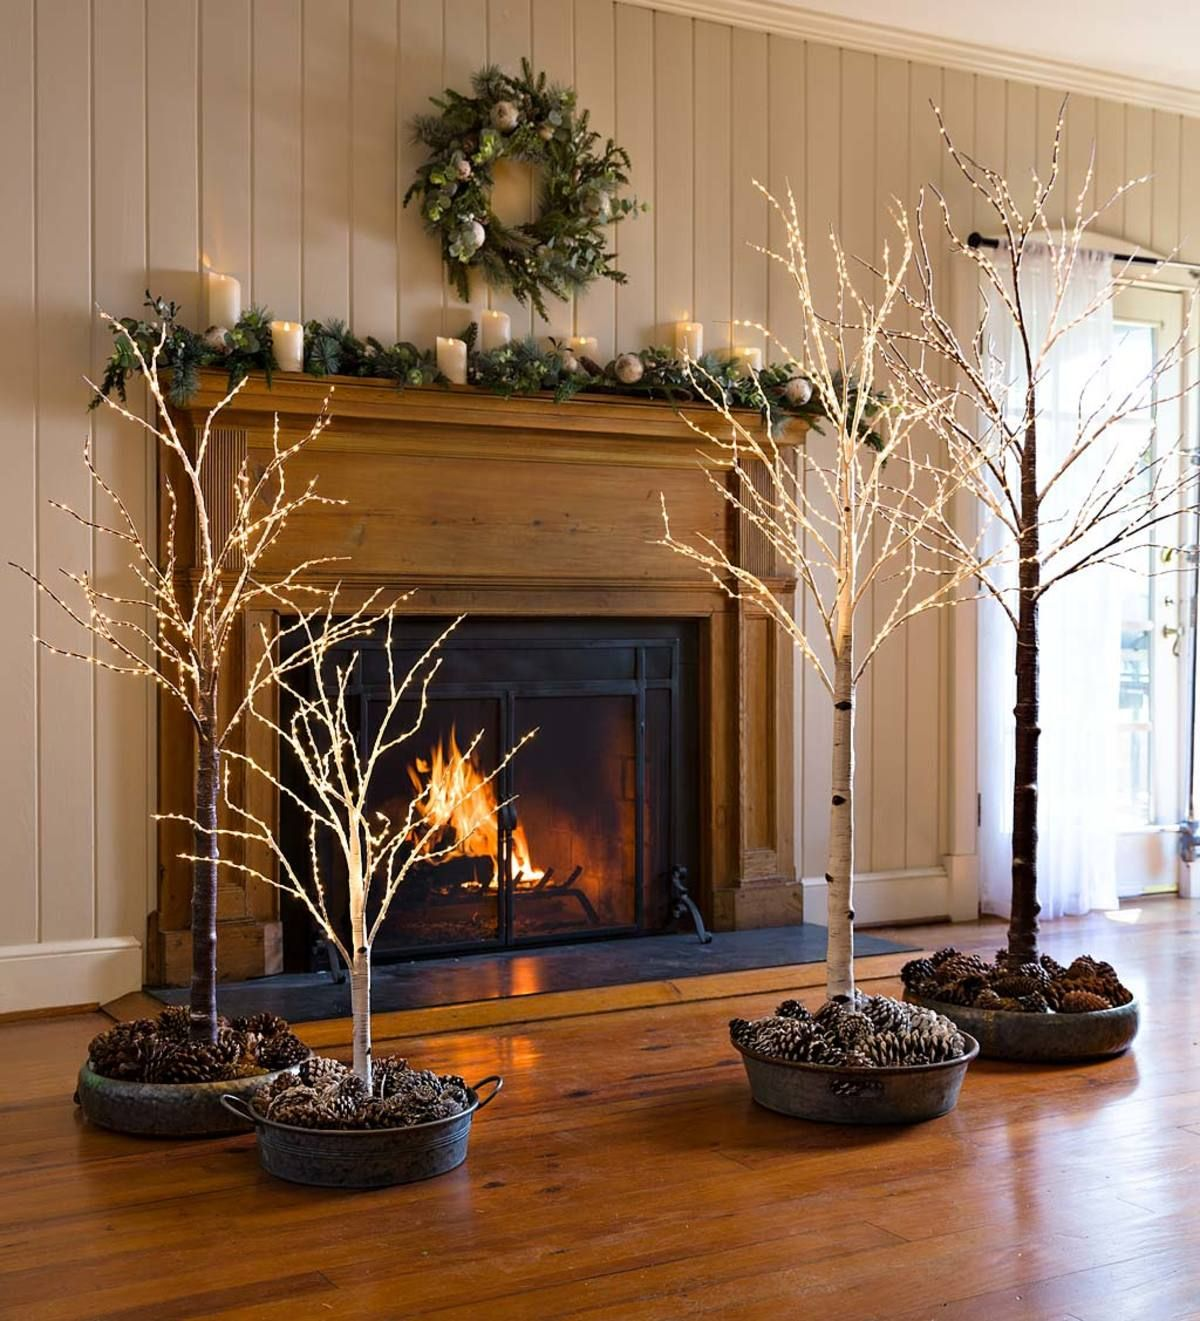 Our Indoor/Outdoor Lighted Birch Tree makes an stunning accent in any season. Simply beautiful ...